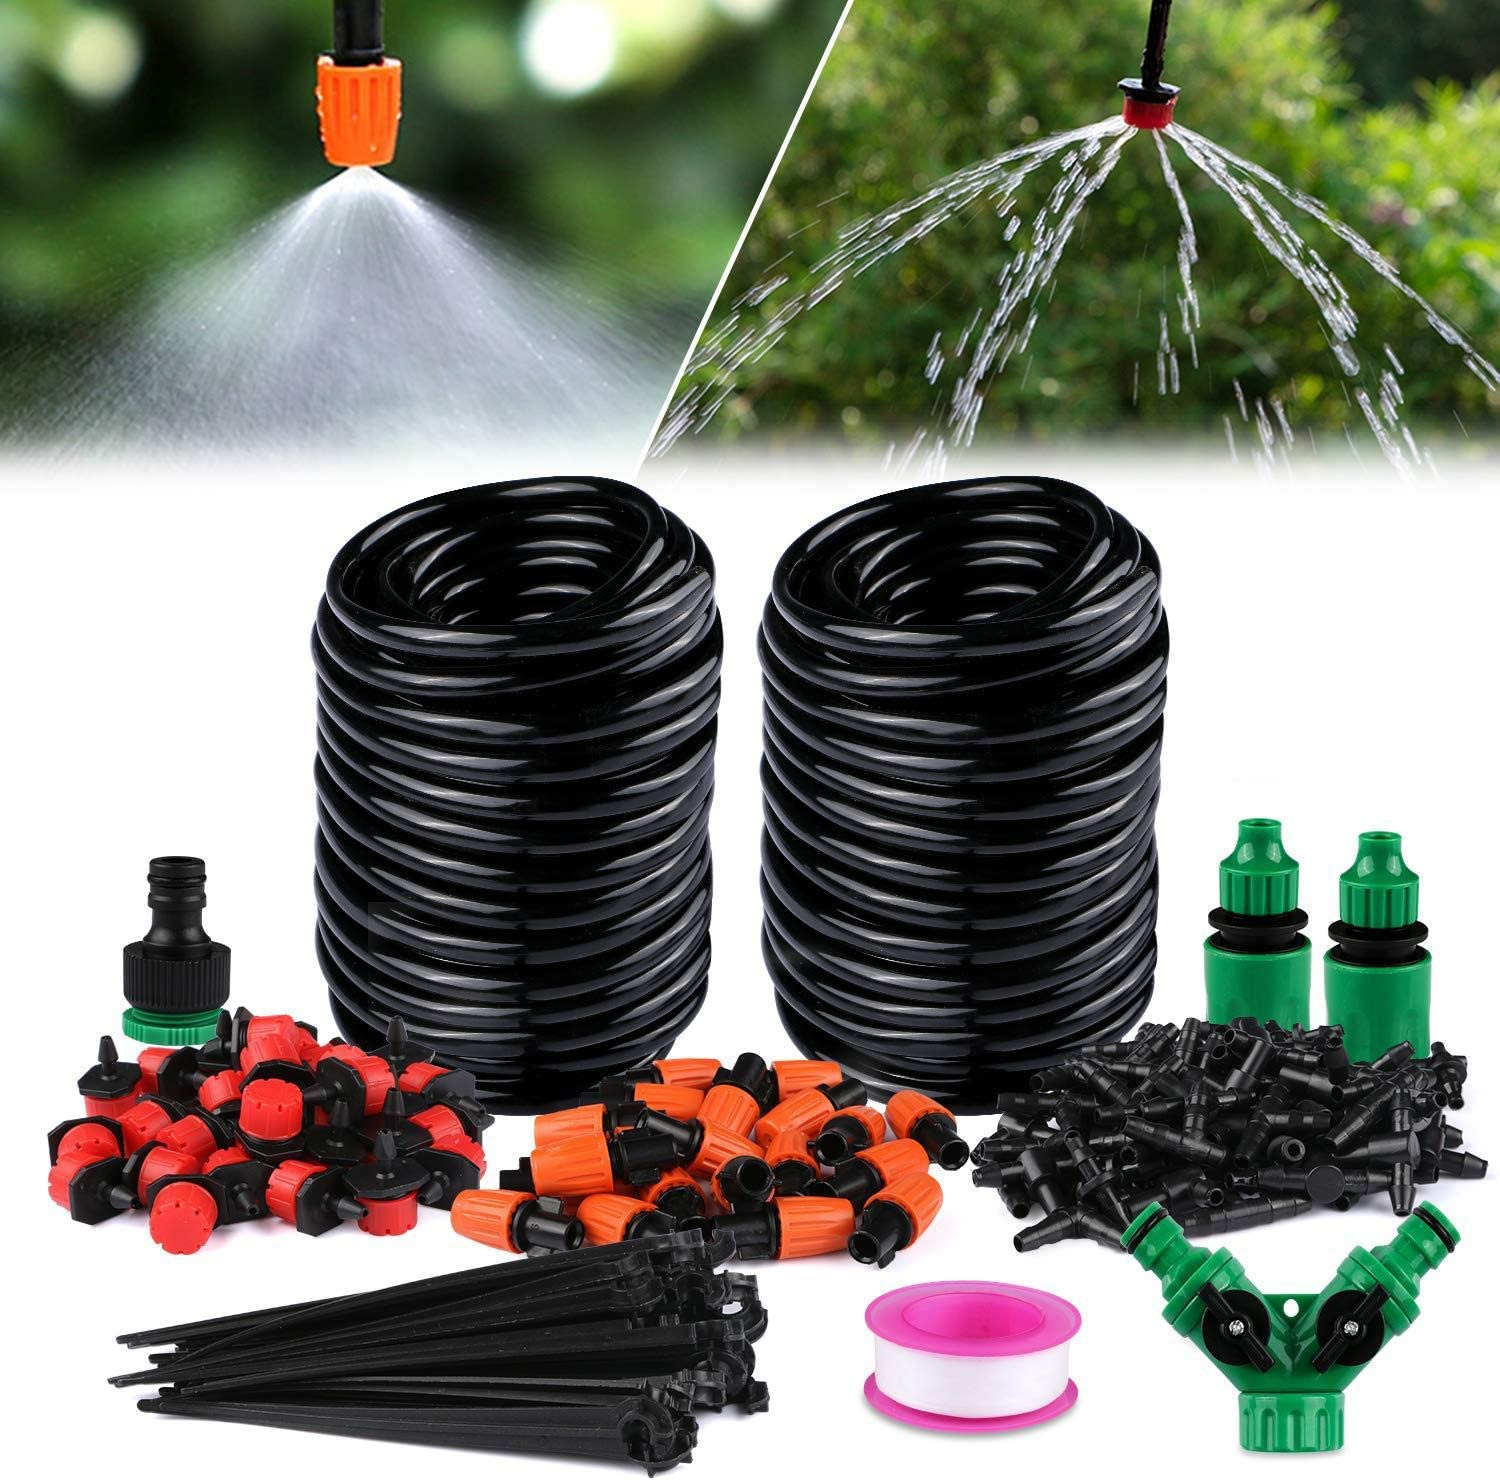 LINEX Drip Irrigation Kit System Automatic Watering Equipment Tubing Hose for Garden 100 ft